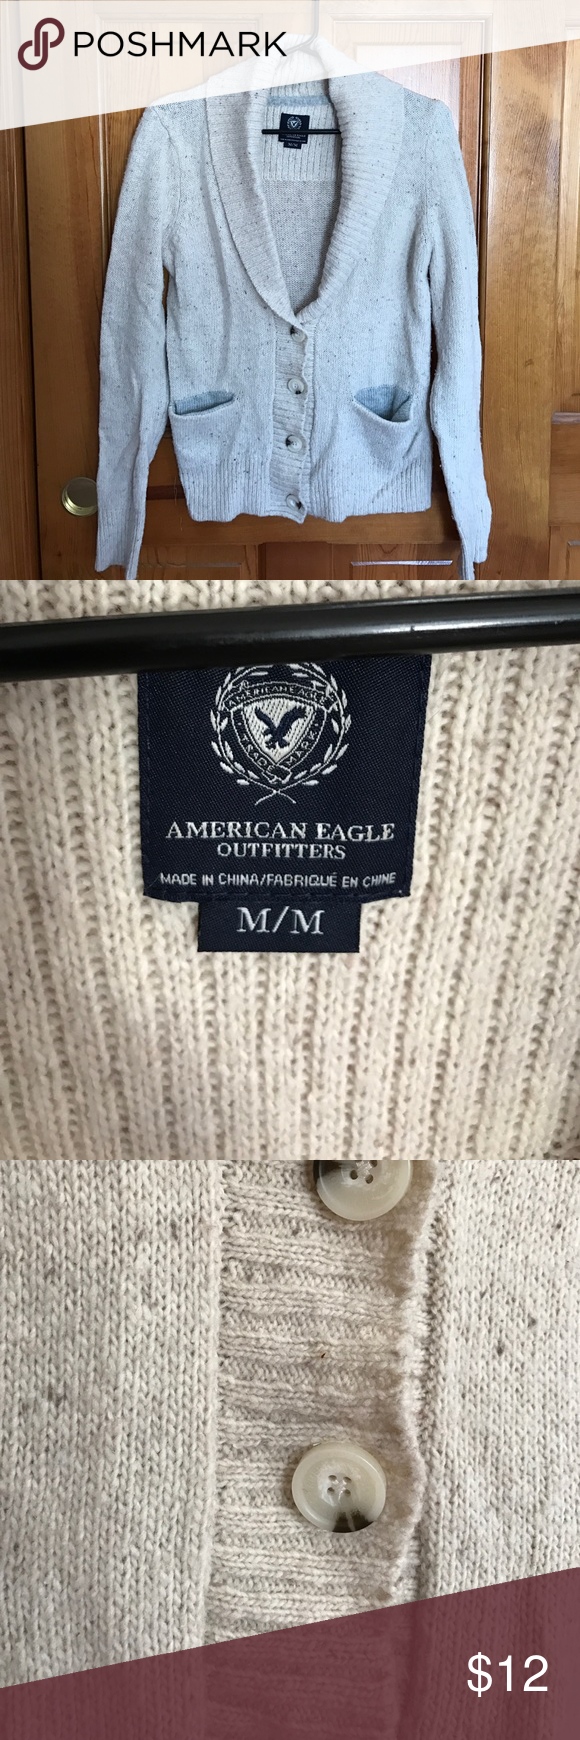 Cozy cardigan | American eagle outfitters, Cozy and Eagle